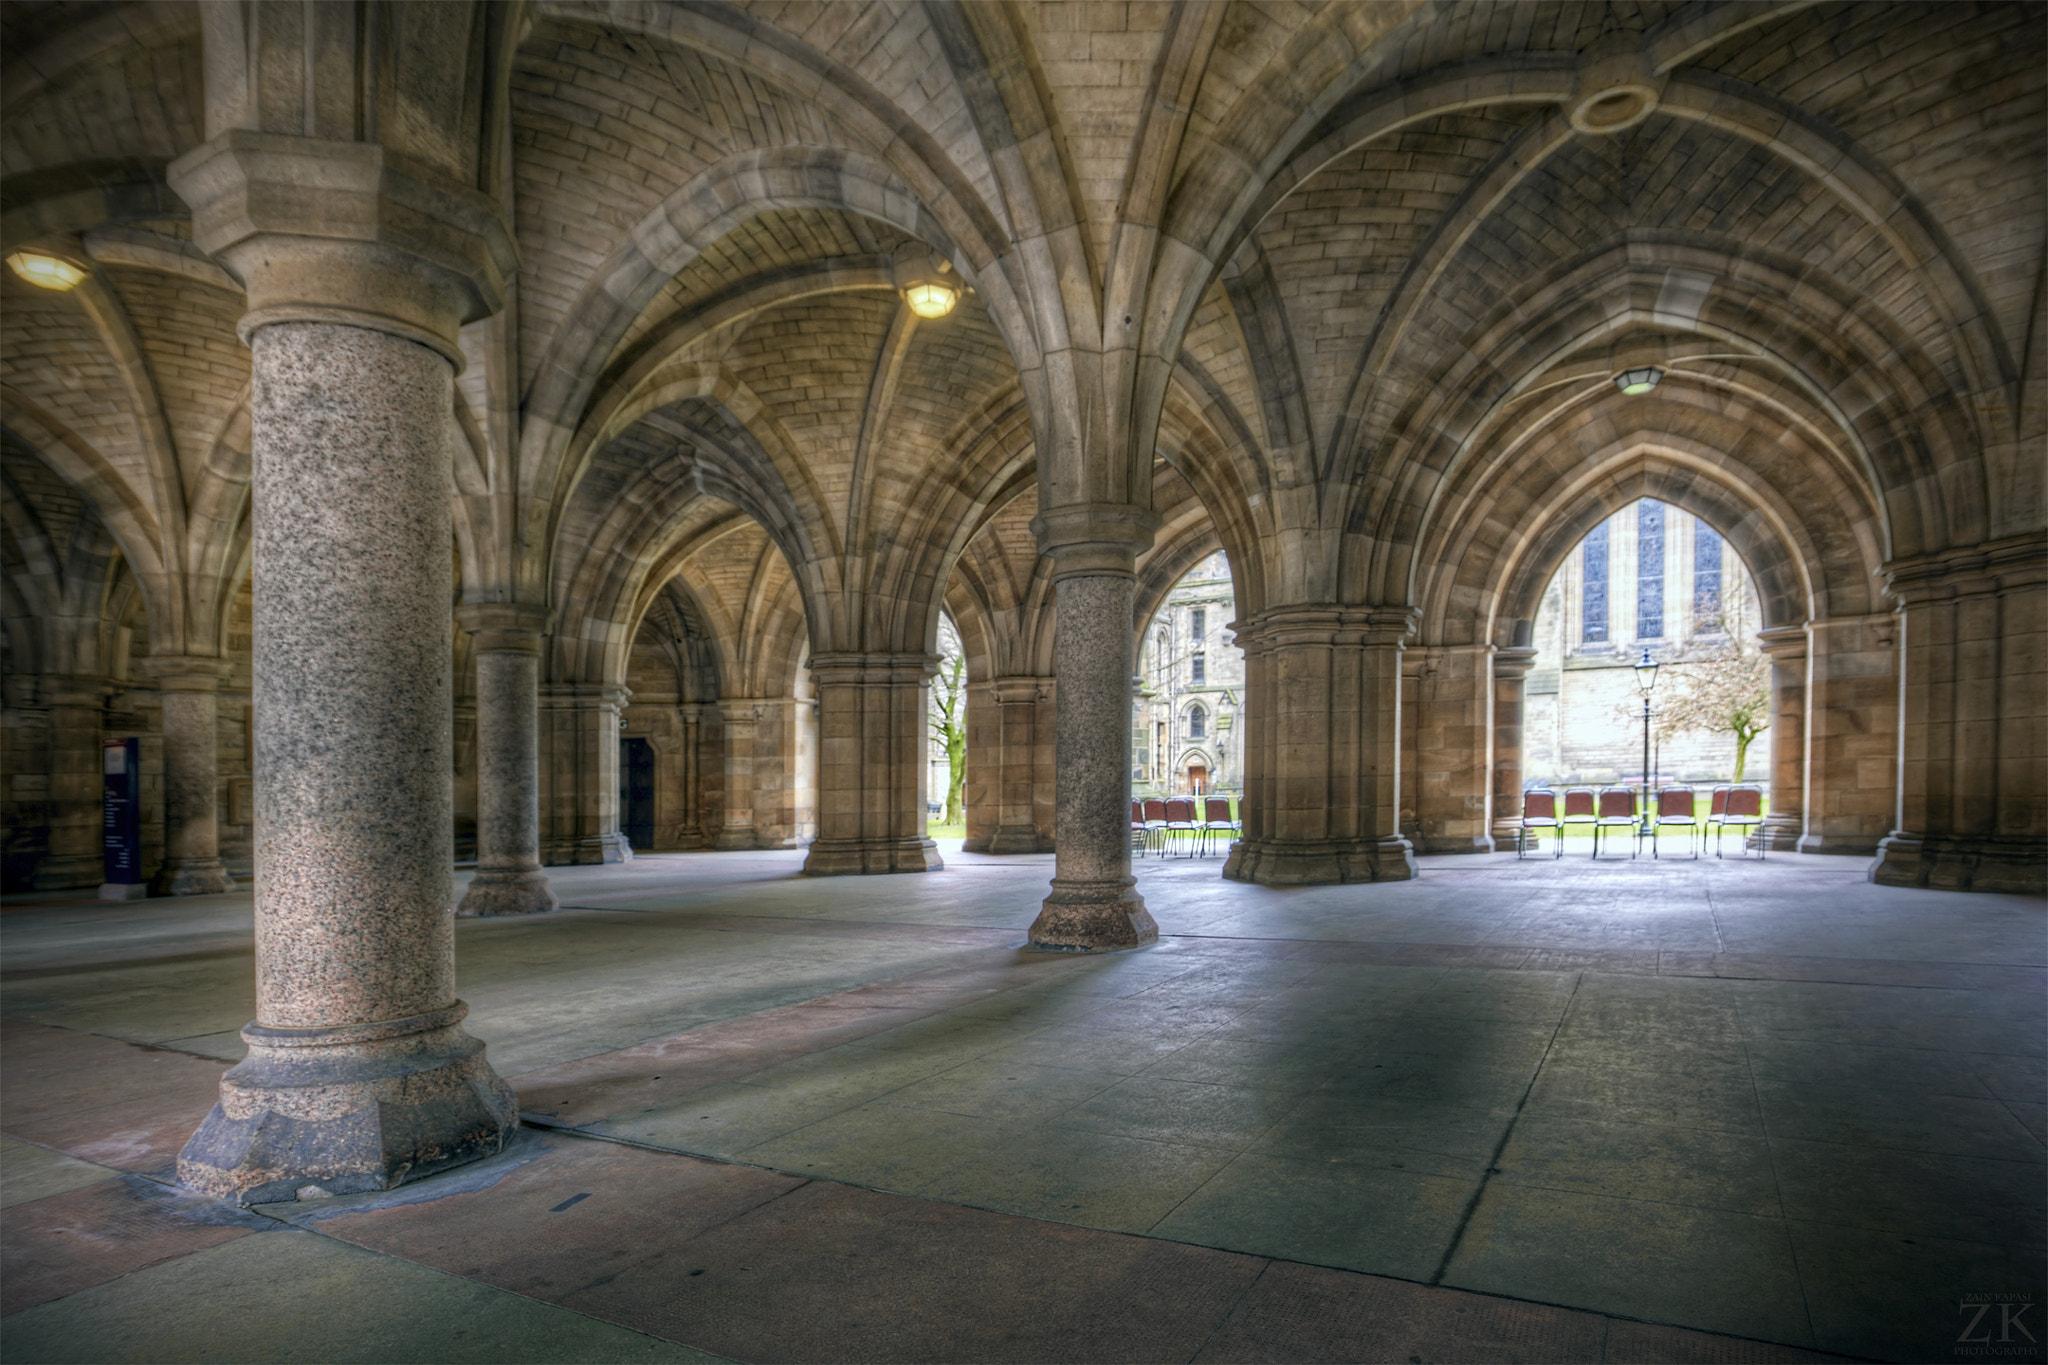 Photograph Glasgow University Cloisters - again! by Zain Kapasi on 500px